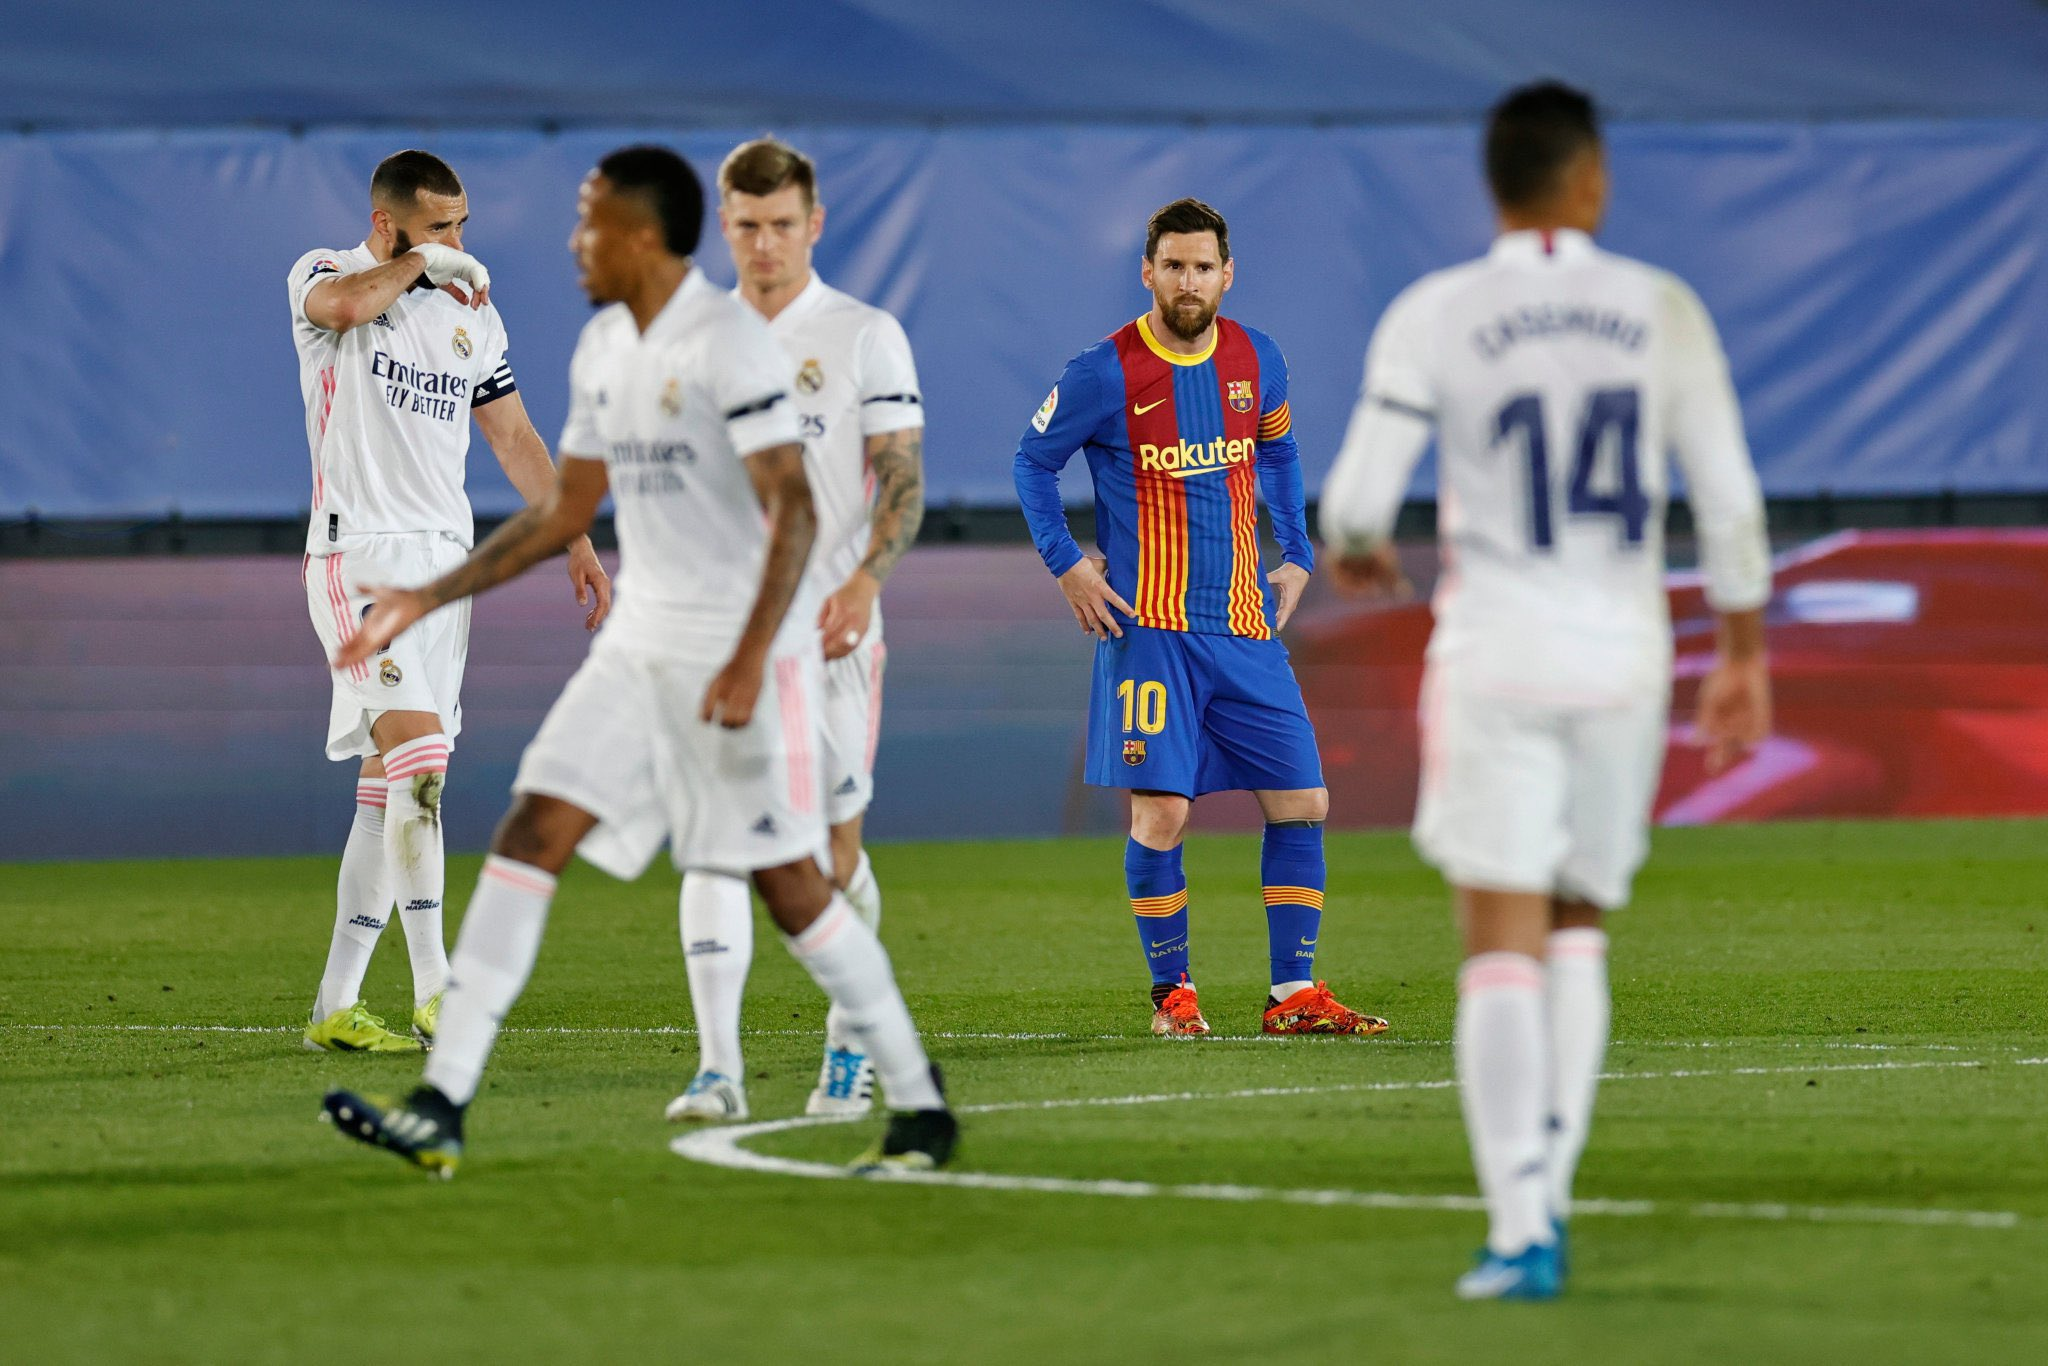 Messi's El Clasico Goals Drought Continues As Madrid Edge Barca To Go Top